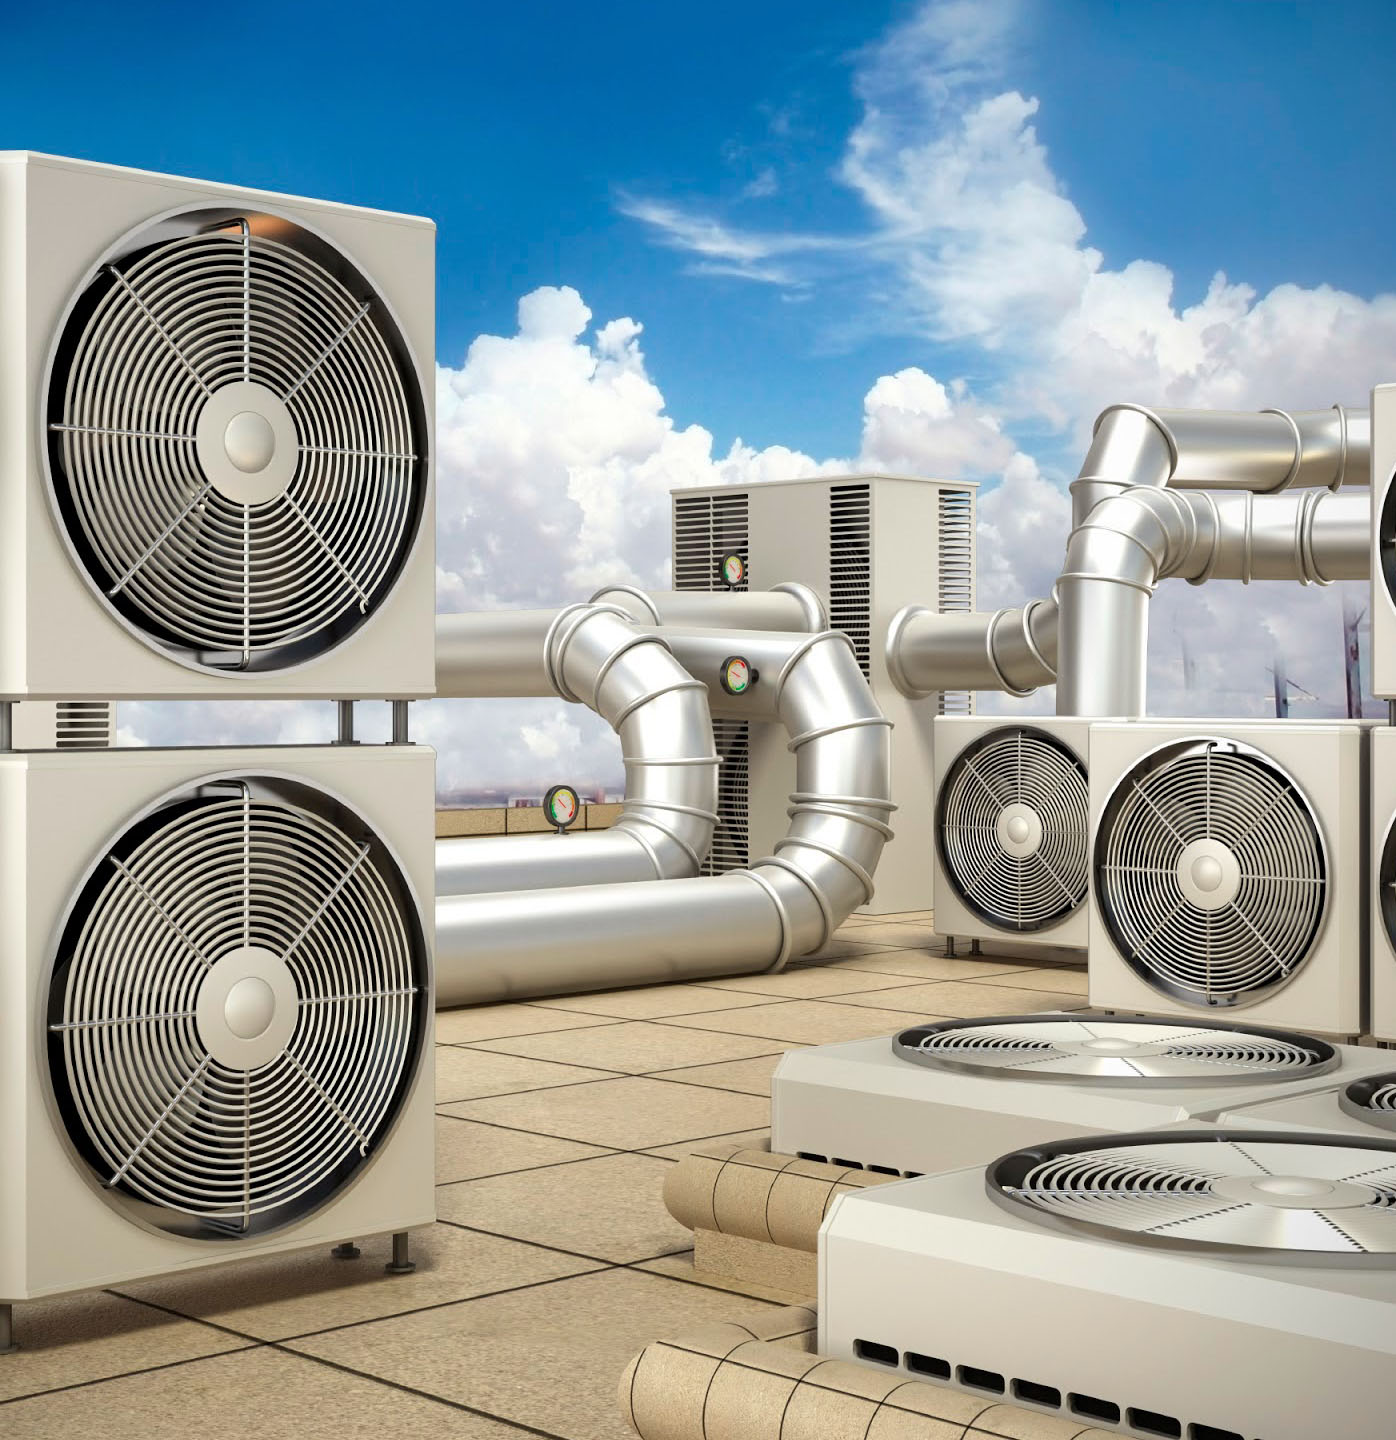 tzavellas-aircondition-industry